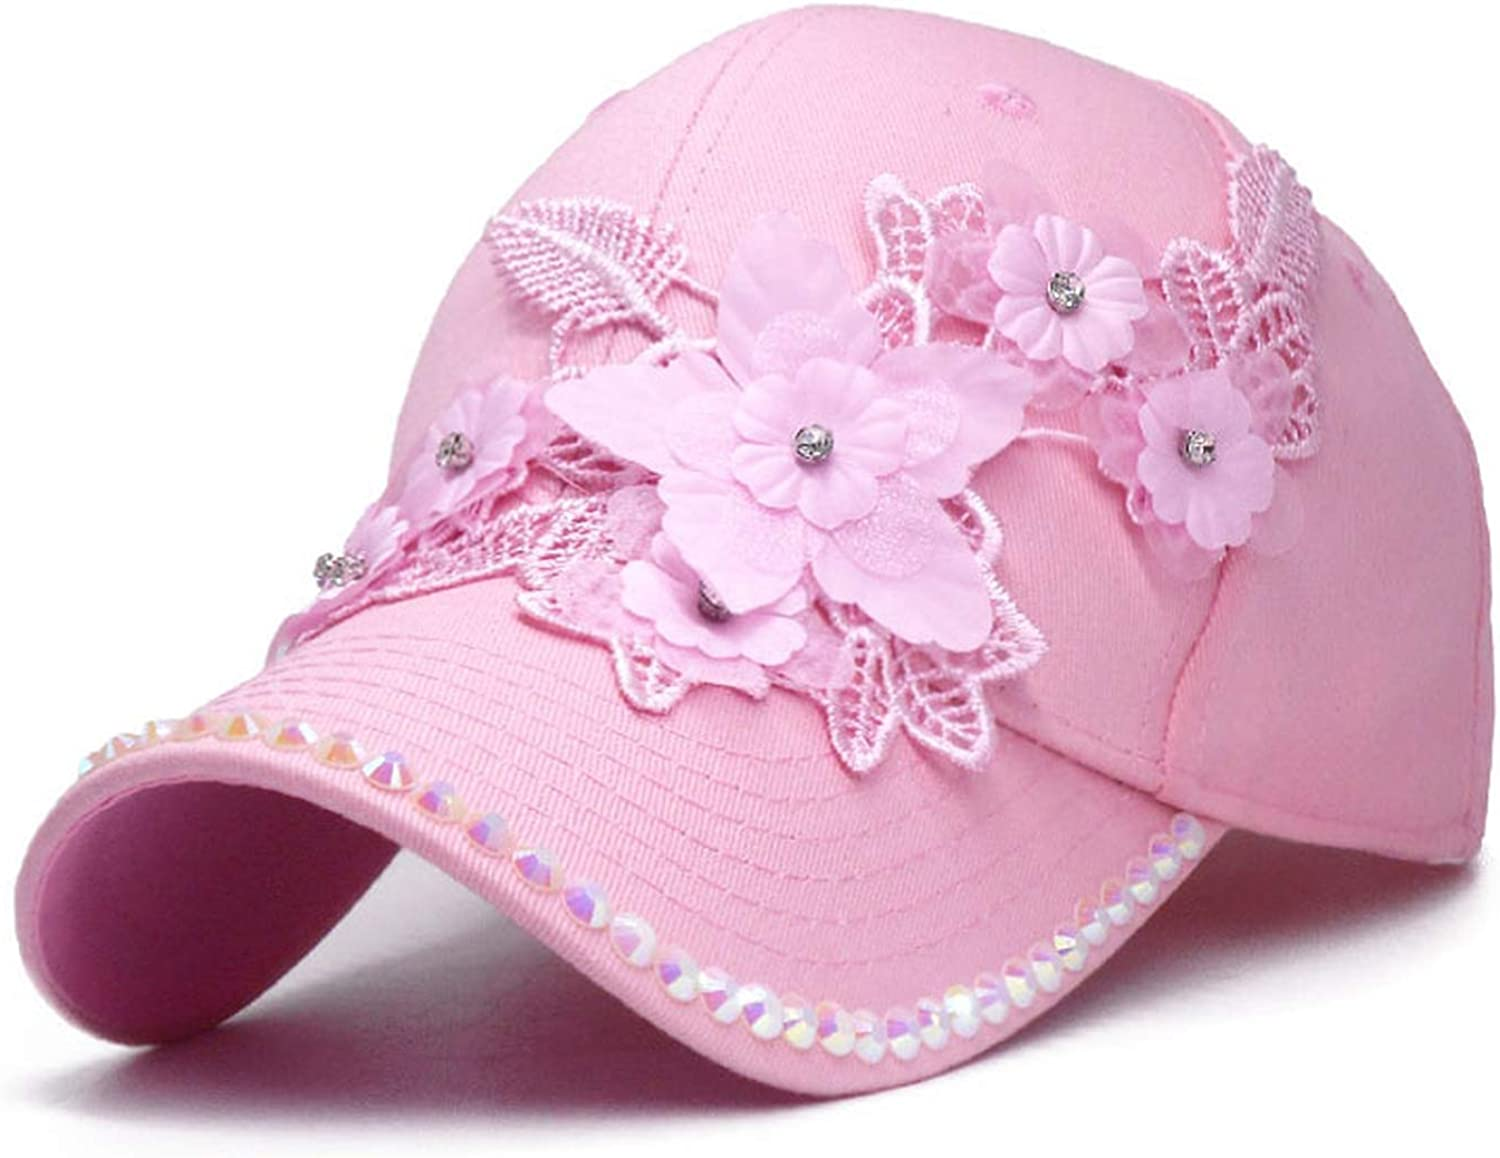 2019 New Baseball Cap for Girls Lifelike Flowers Women Summer Caps Casual Sun Casquette Luxury Hip Hop Hat